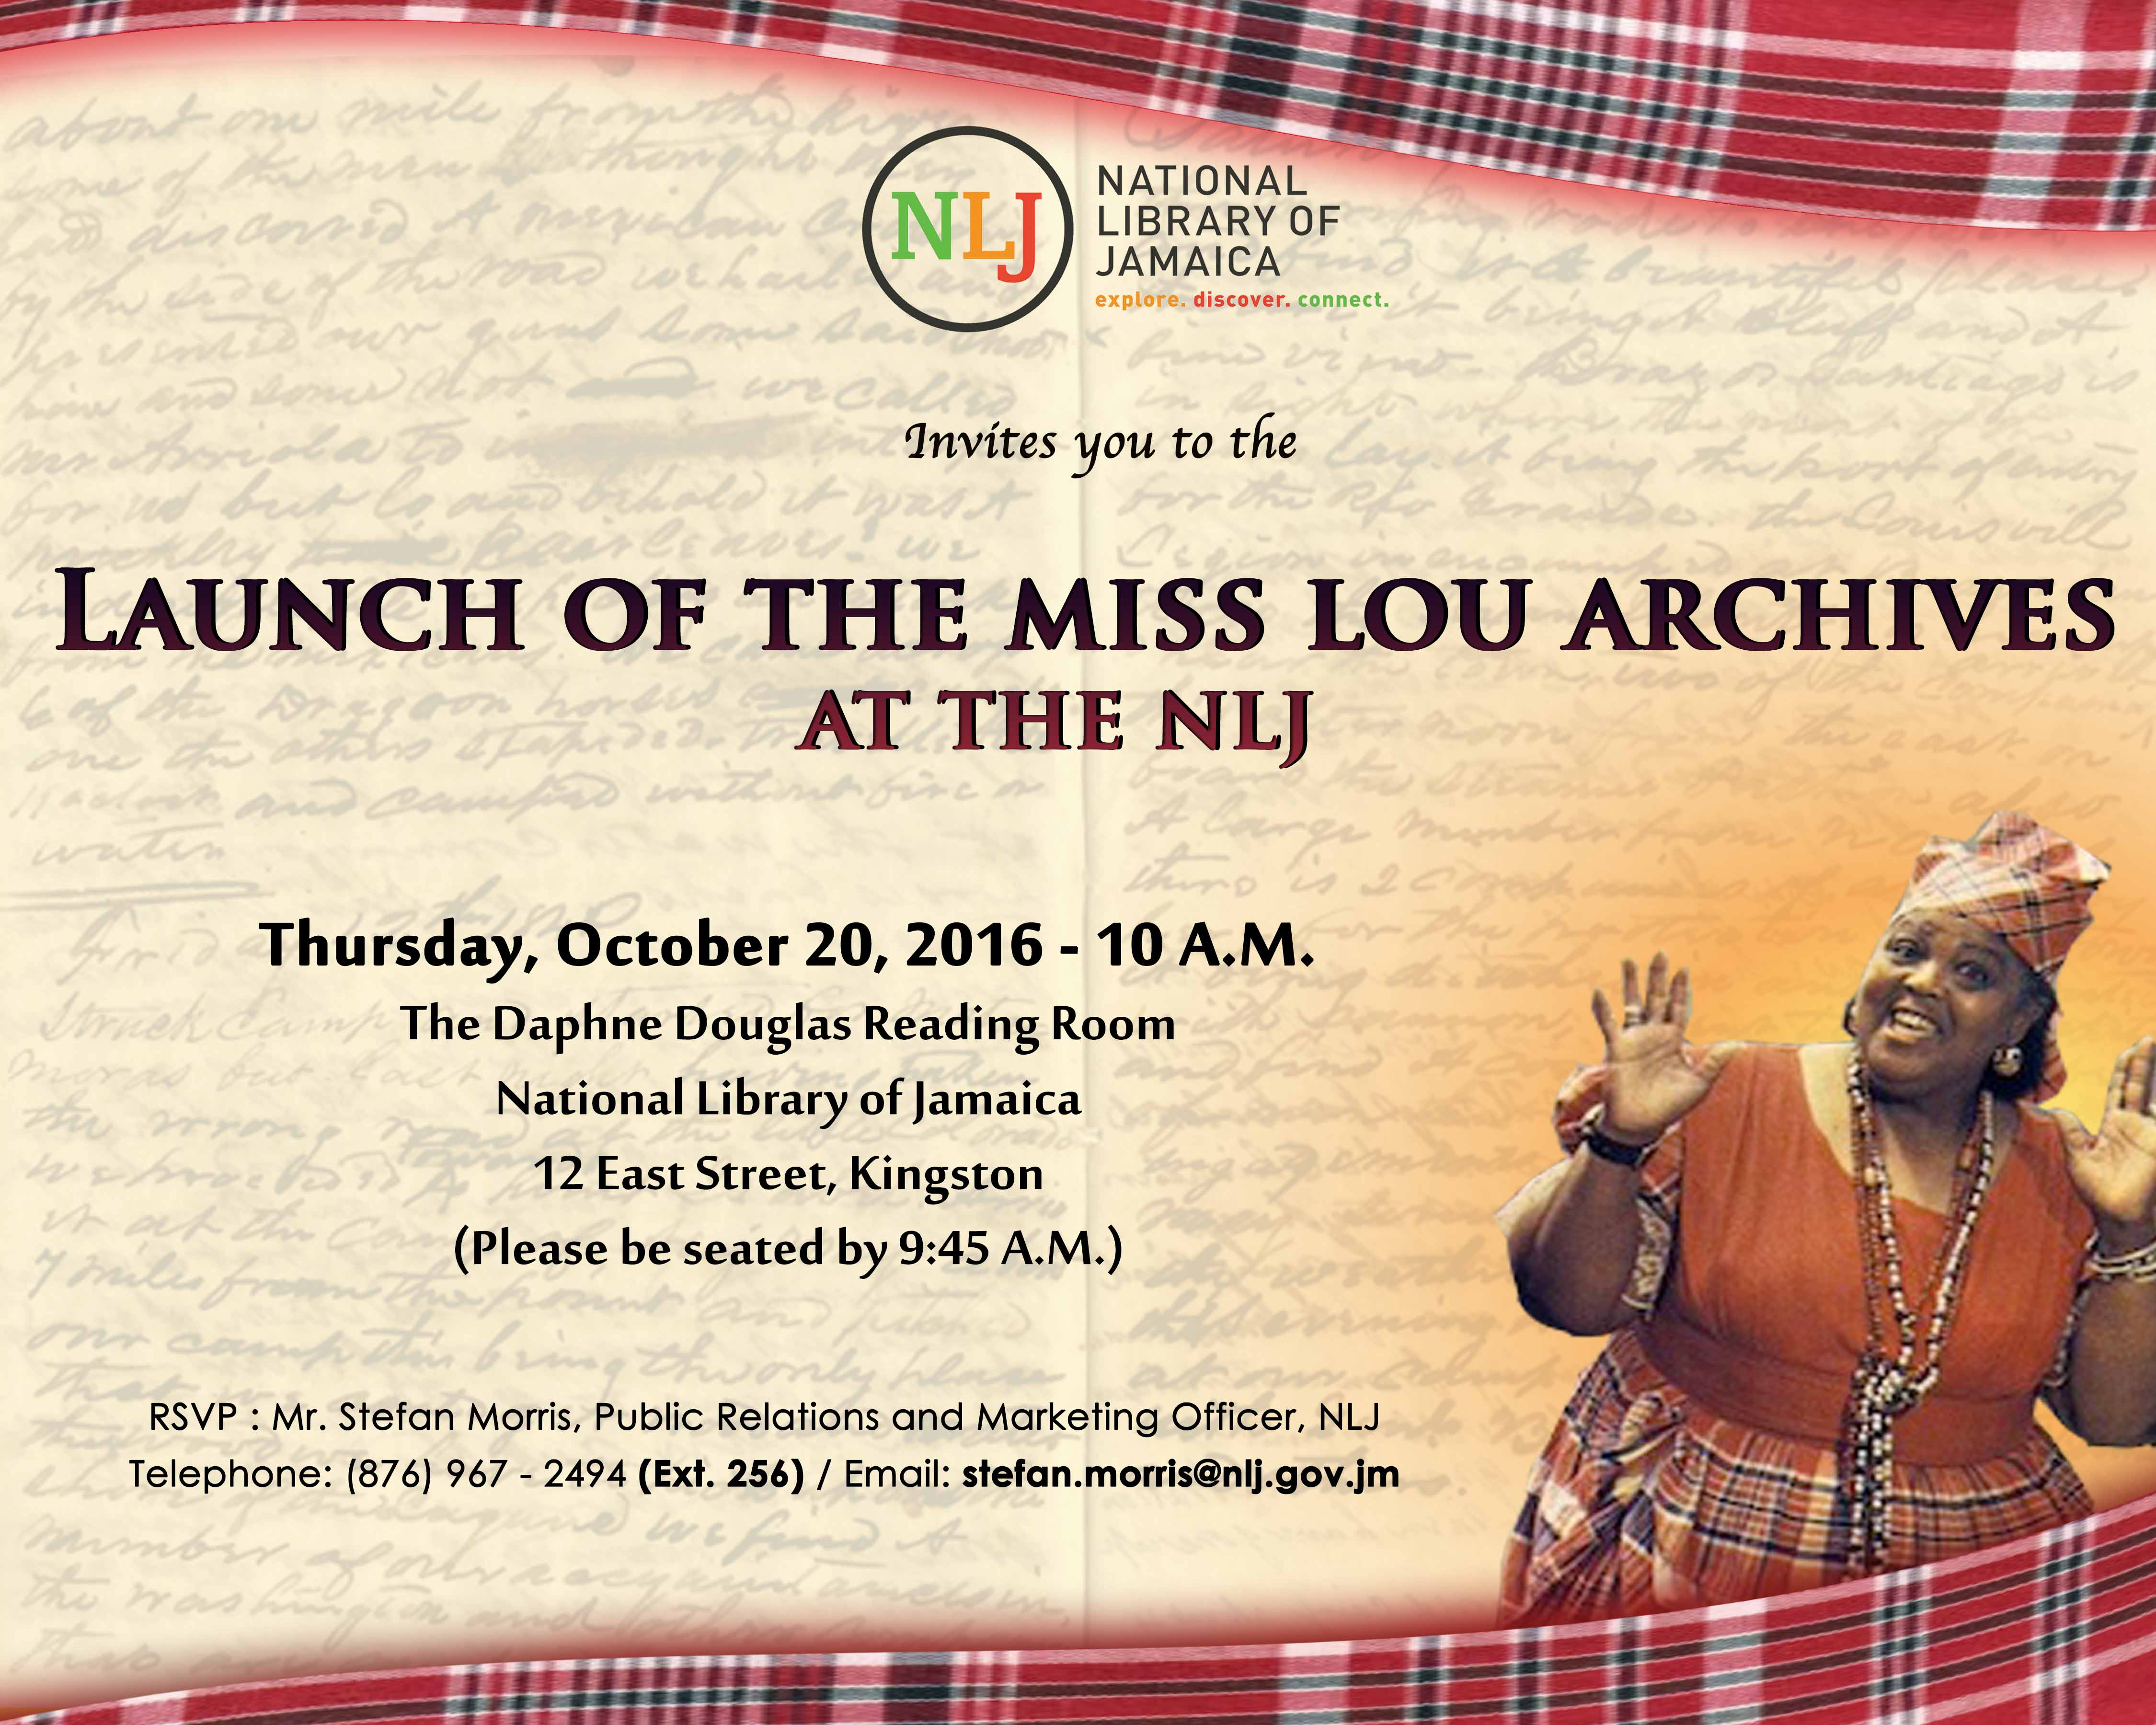 Launch of The Miss Lou Archives at the NLJ